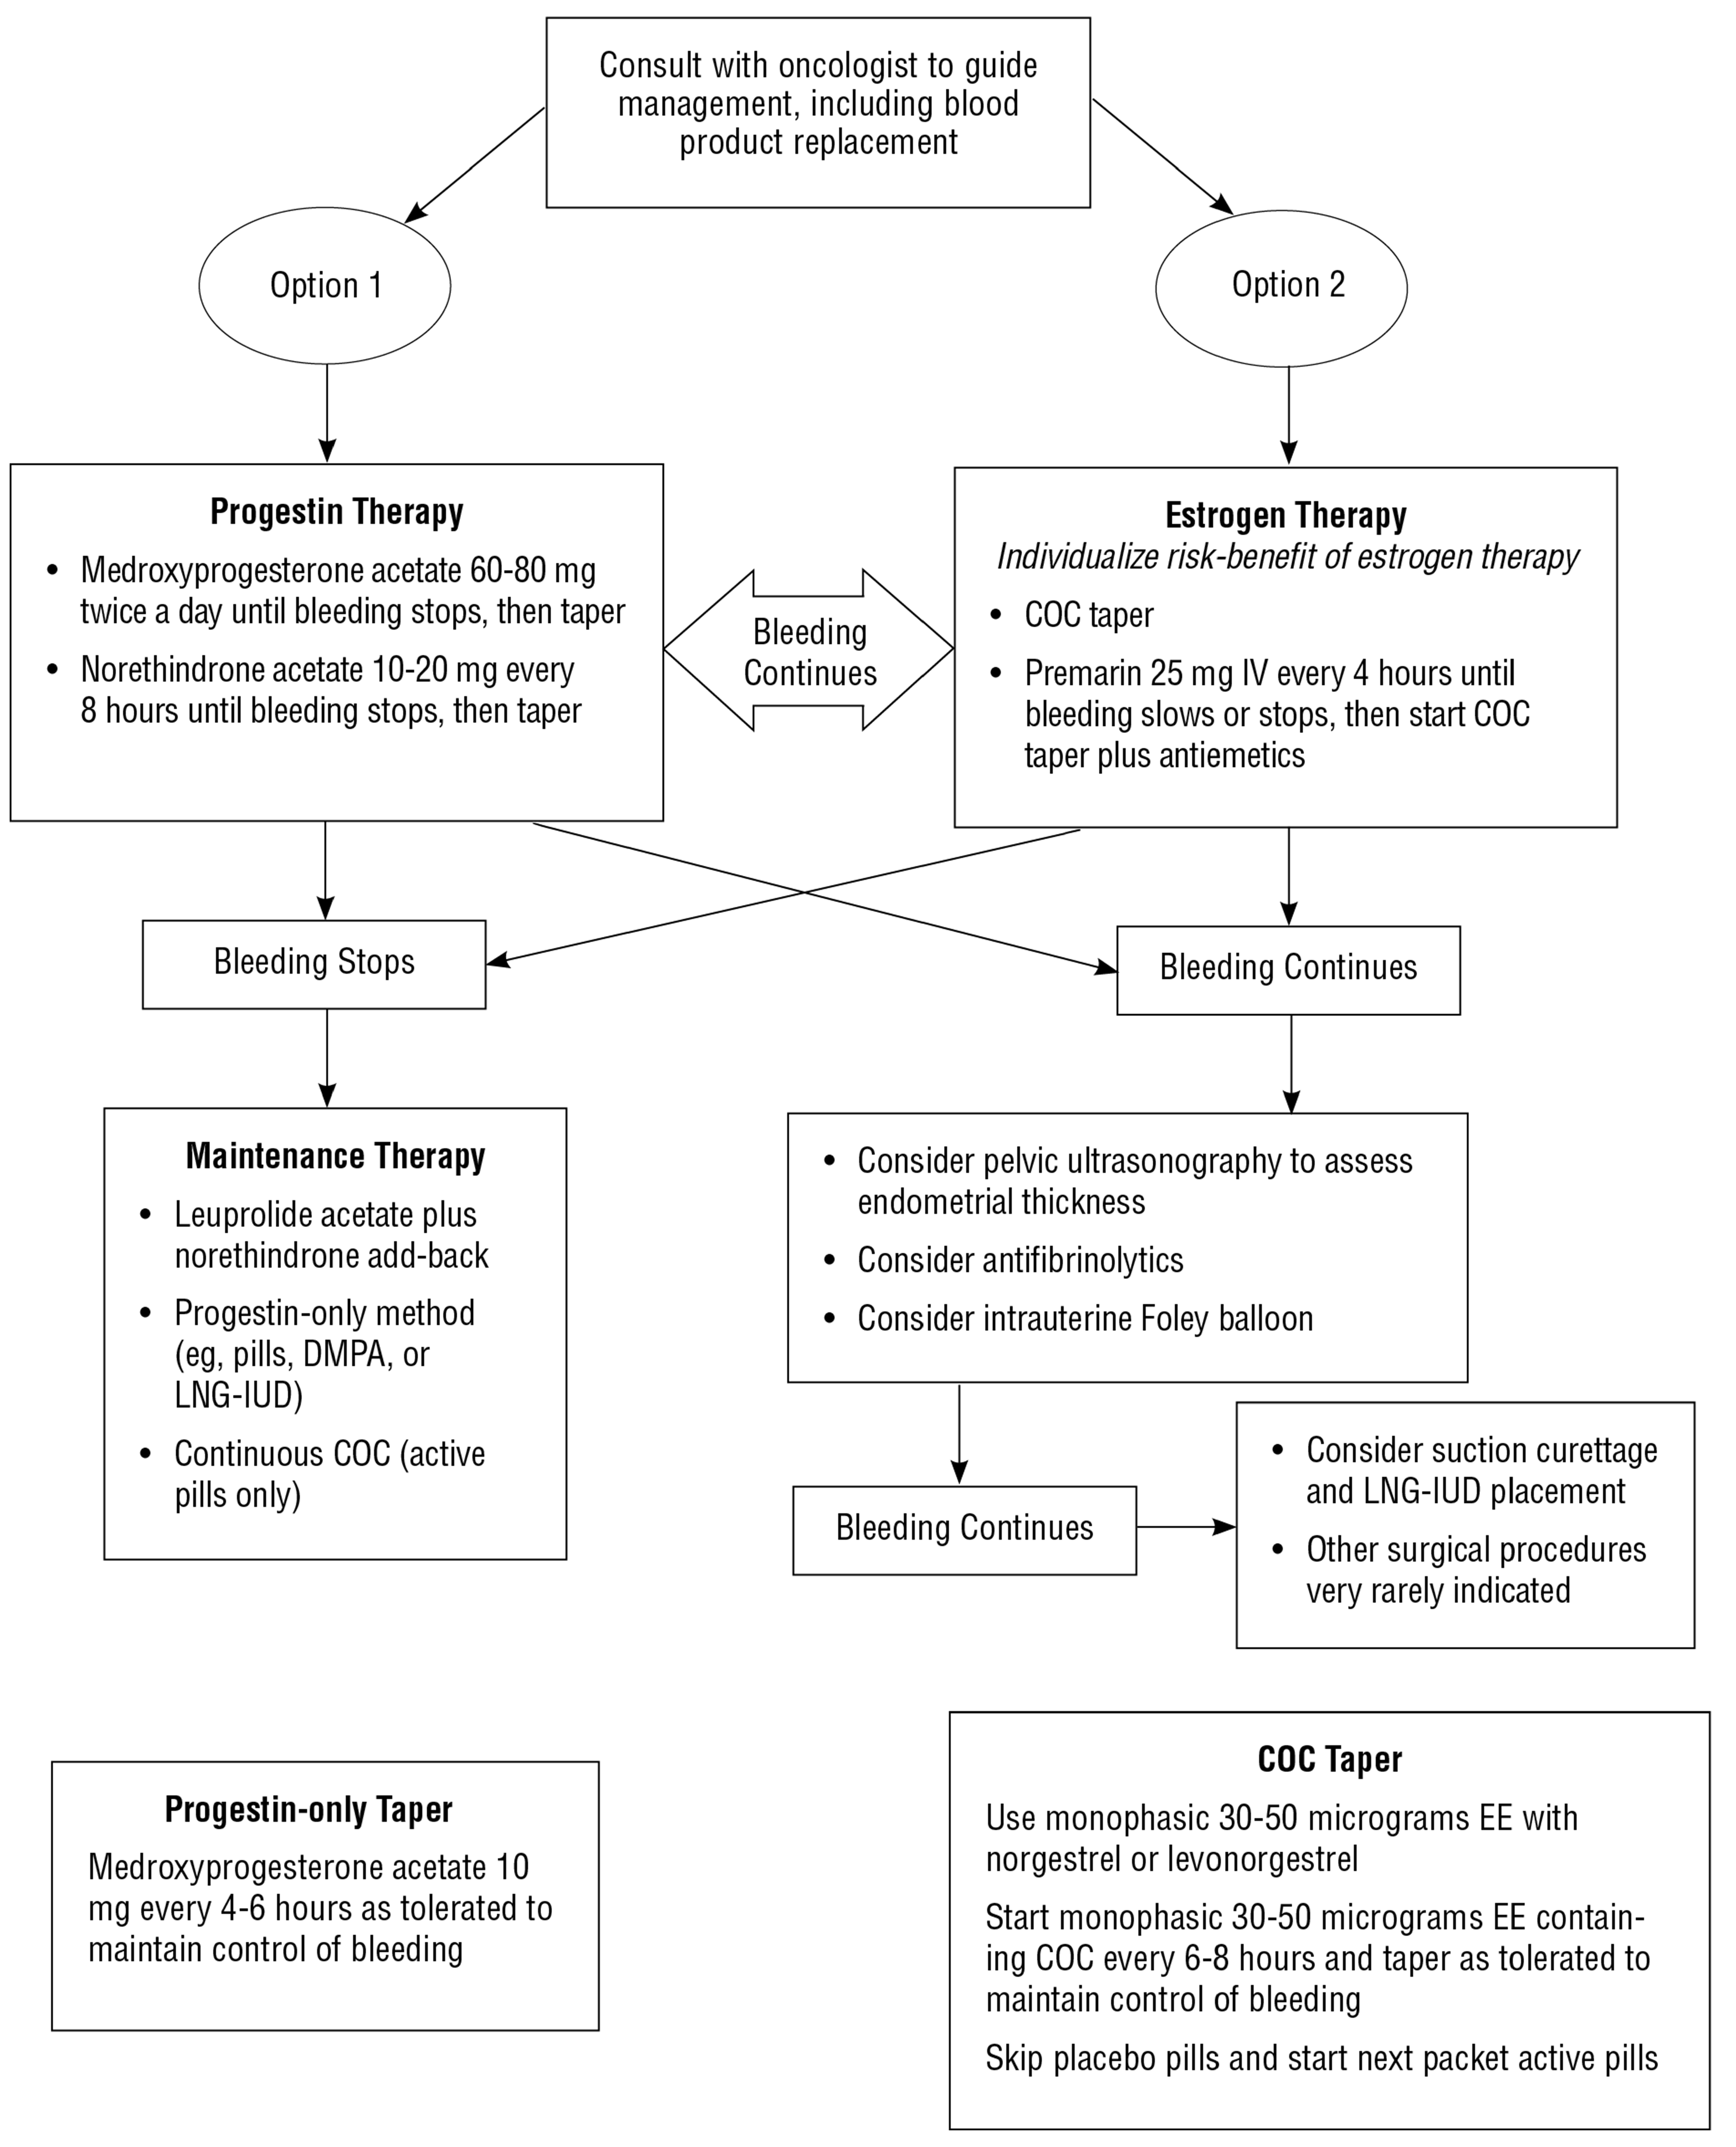 Options for Prevention and Management of Menstrual Bleeding in Adolescent Patients Undergoing Cancer Treatment